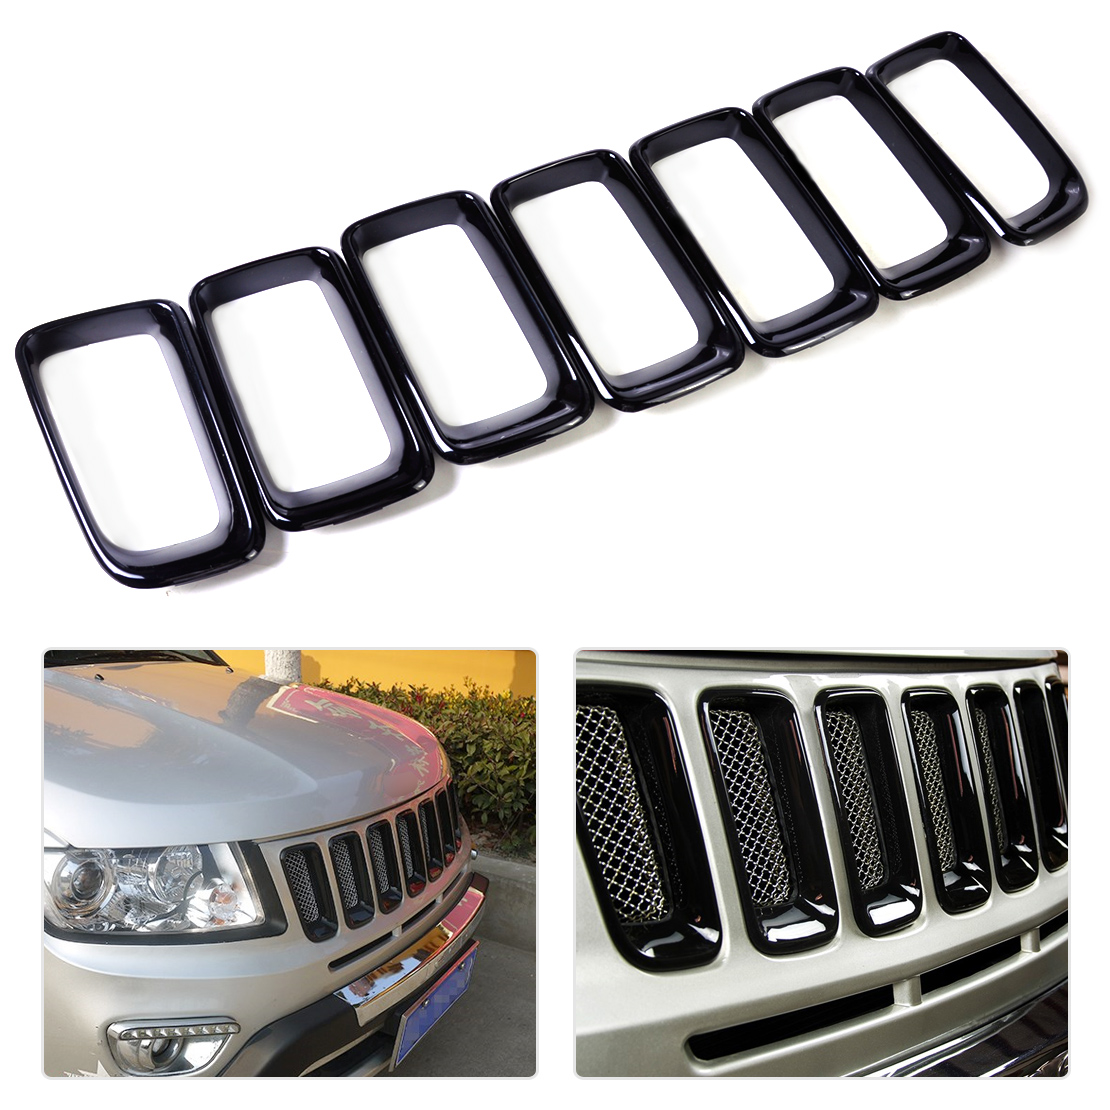 beler 7pcs Black Front Grille Vent Hole Cover Trim Insert Frame Billet Vertical Fit for Jeep Compass 2011 2012 2013 2014-2016 цена